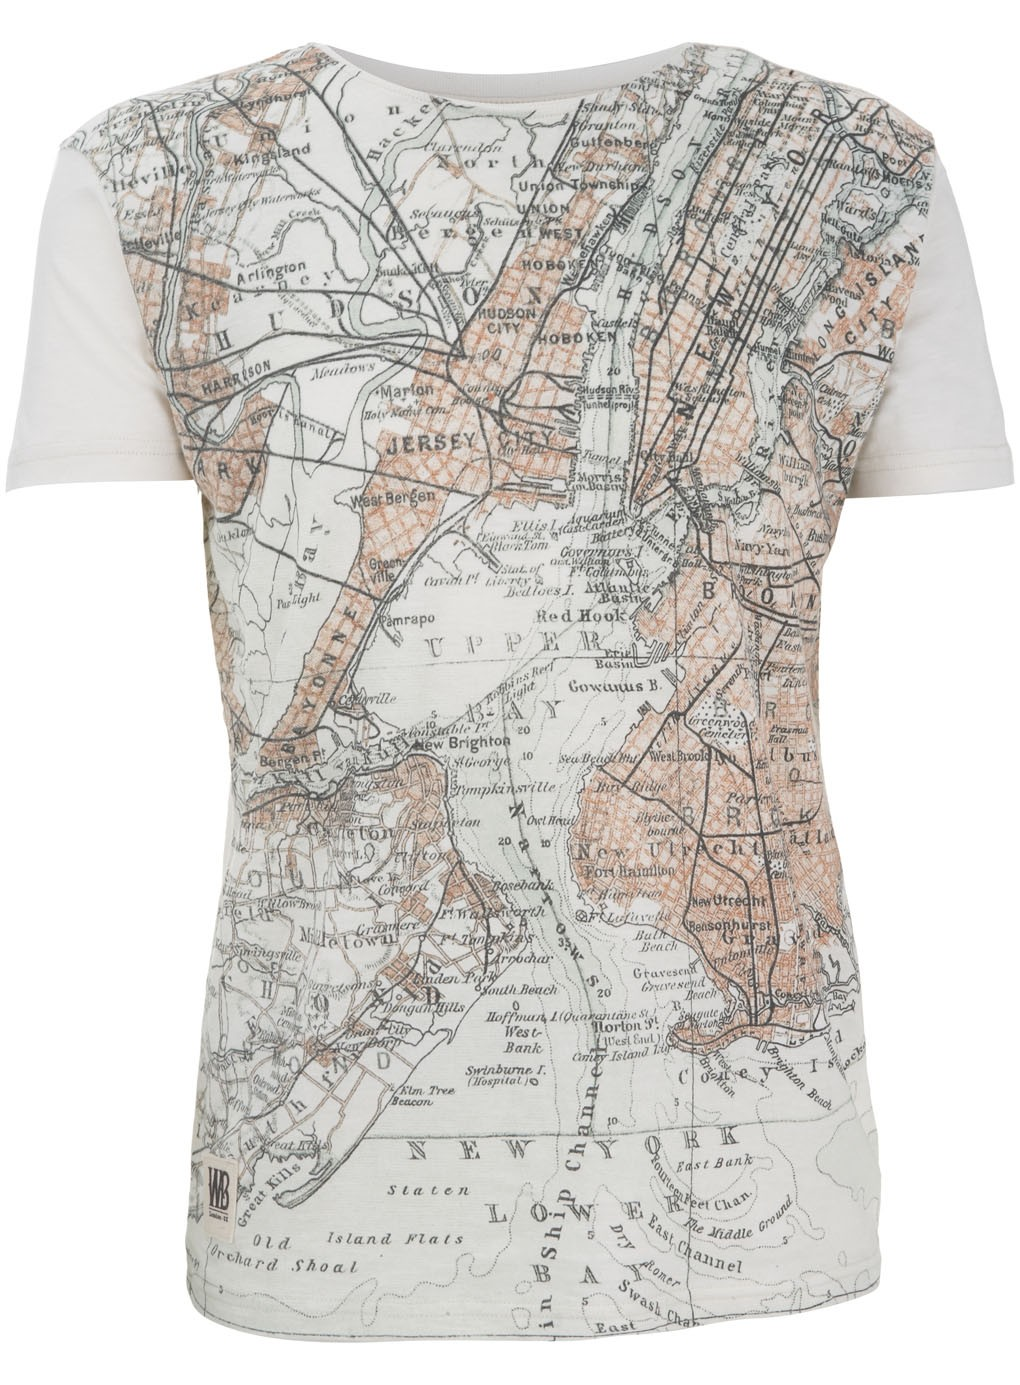 Nyc vintage map t